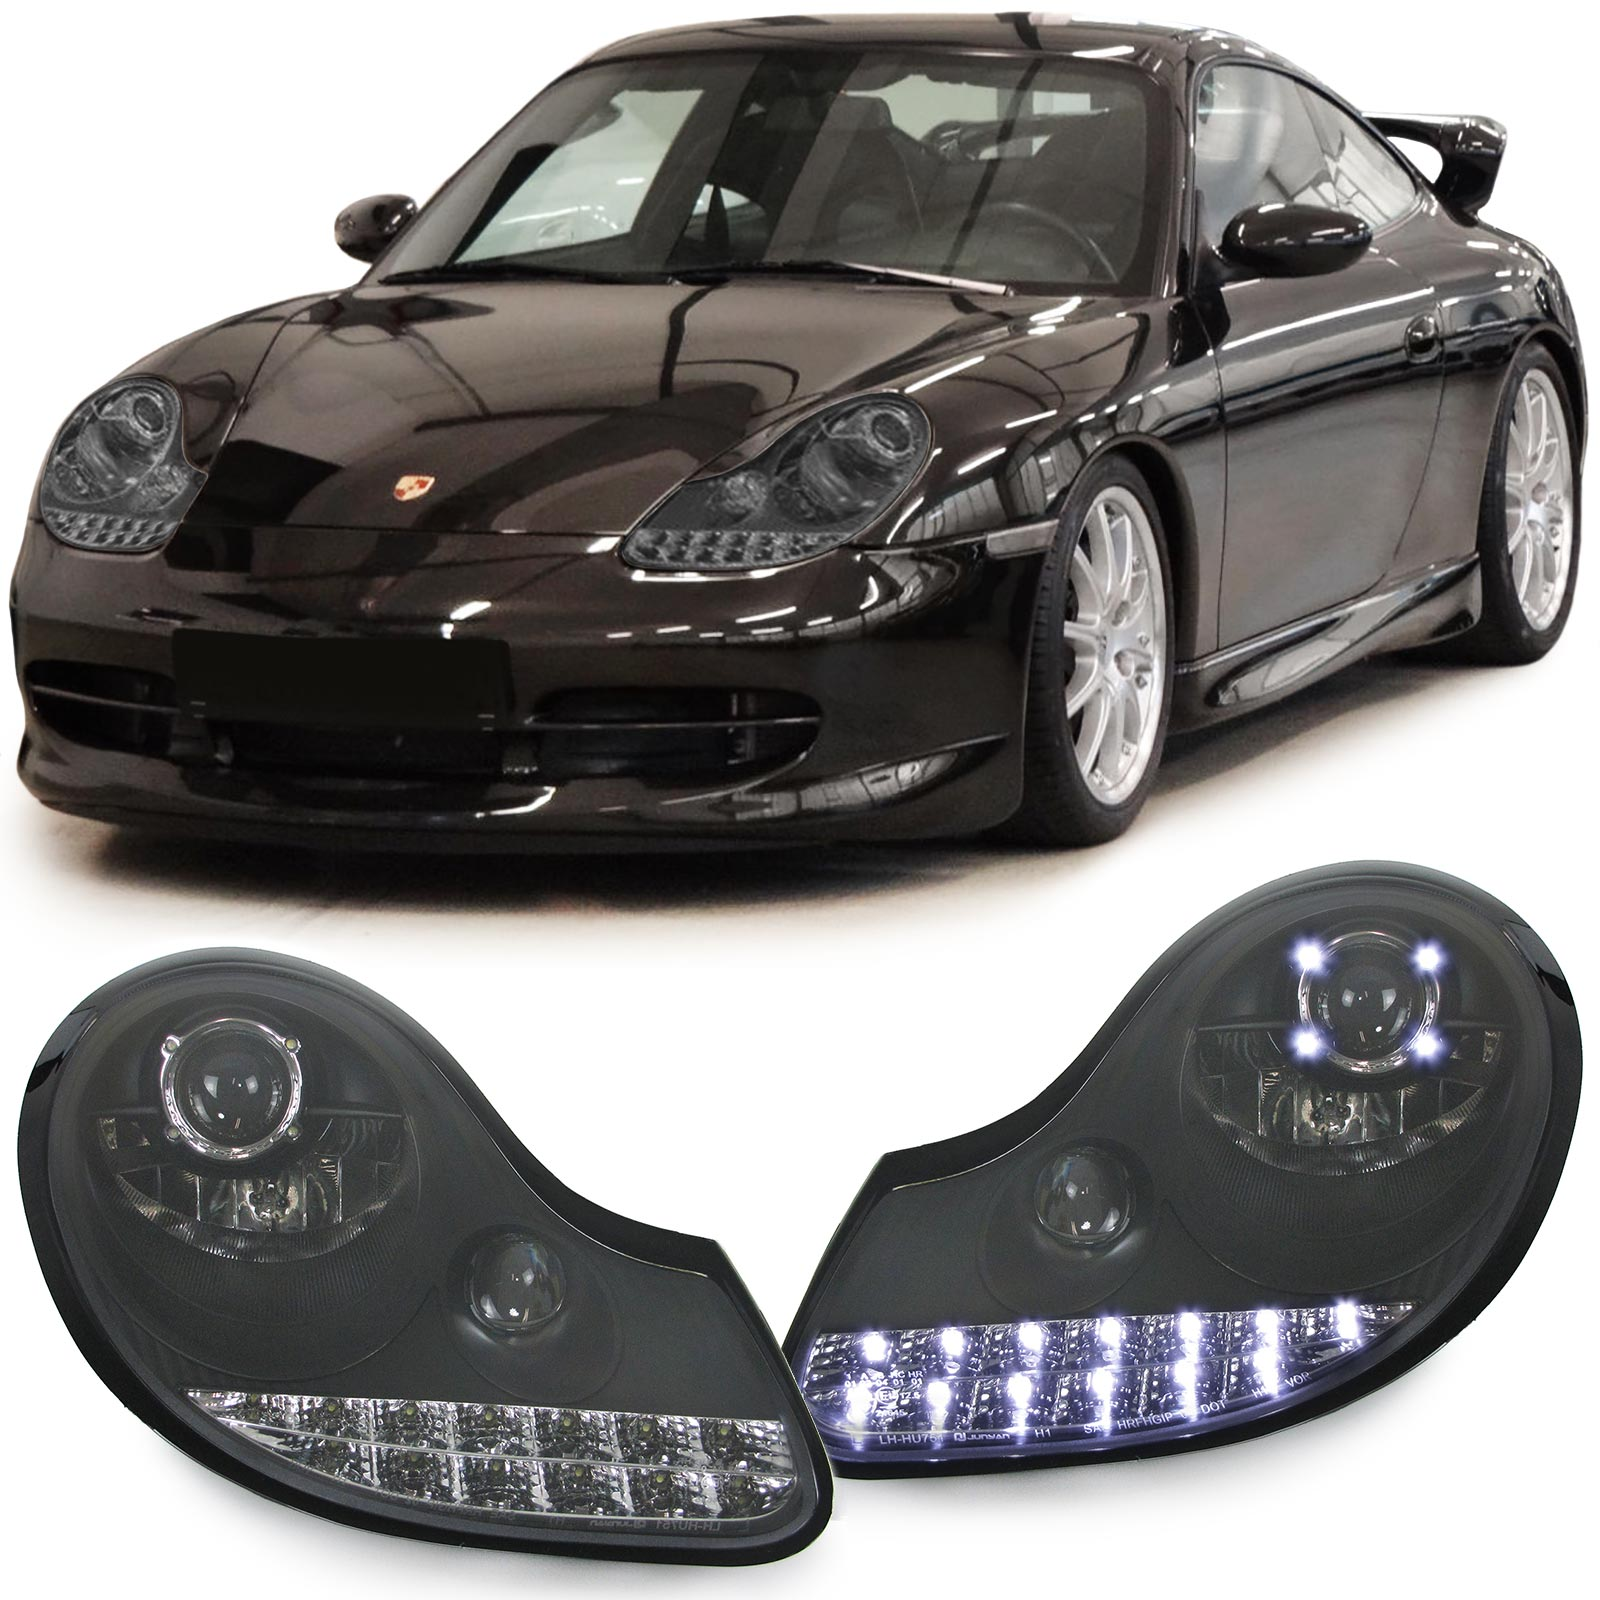 Porsche Boxster 986 Black: Clear GLASS BLACK HEADLIGHTS WITH LED INDICATORS FOR